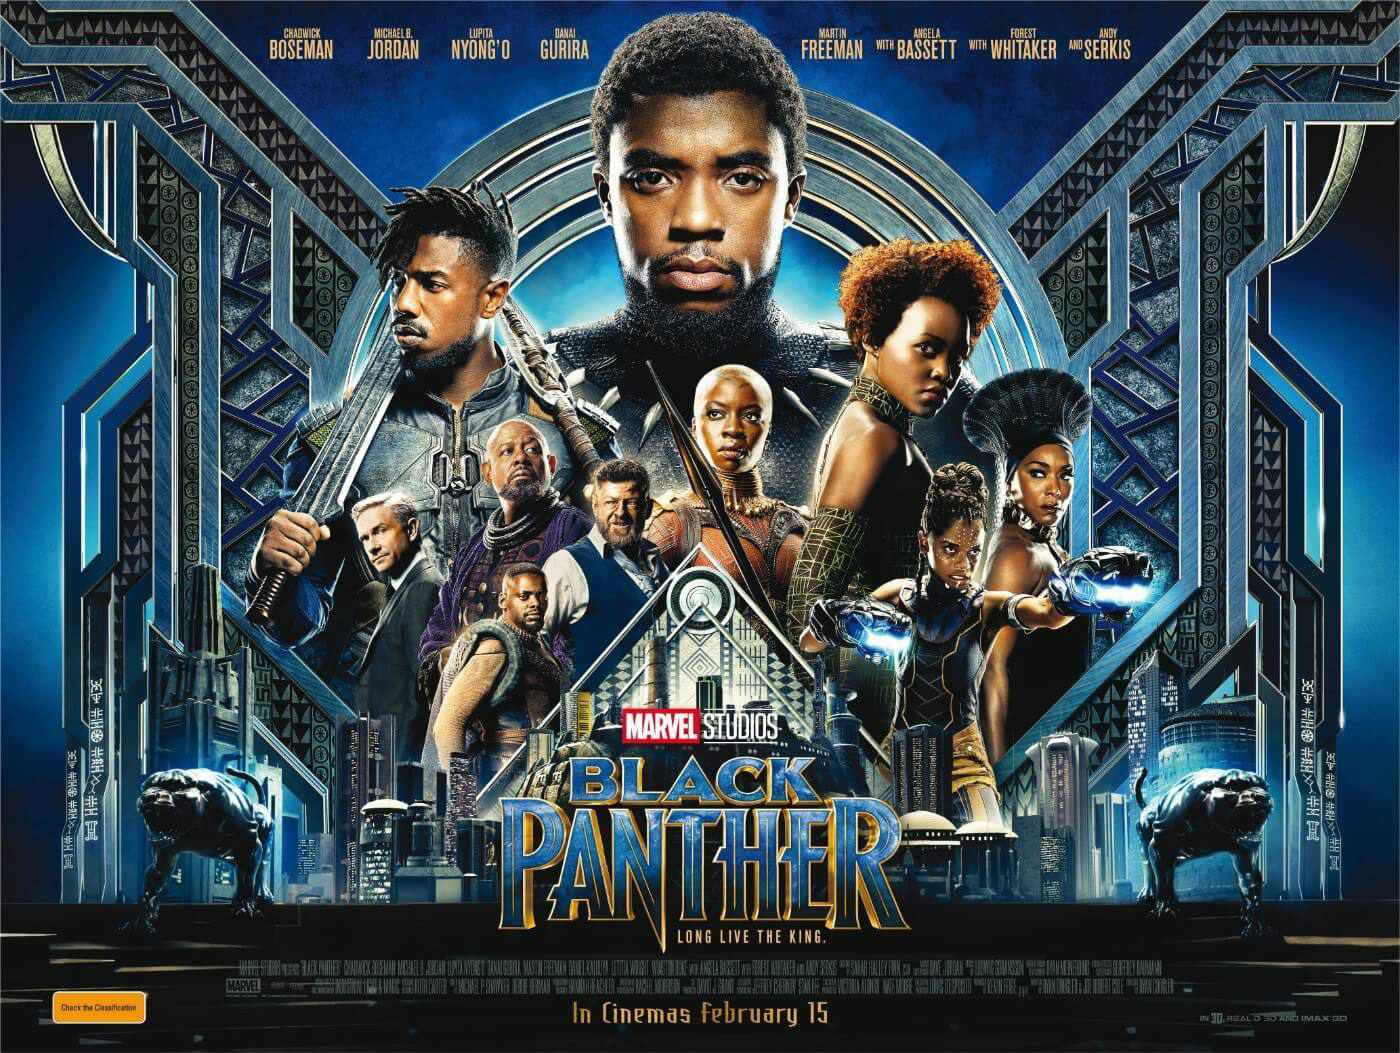 You are currently viewing Notes On A Film: Black Panther